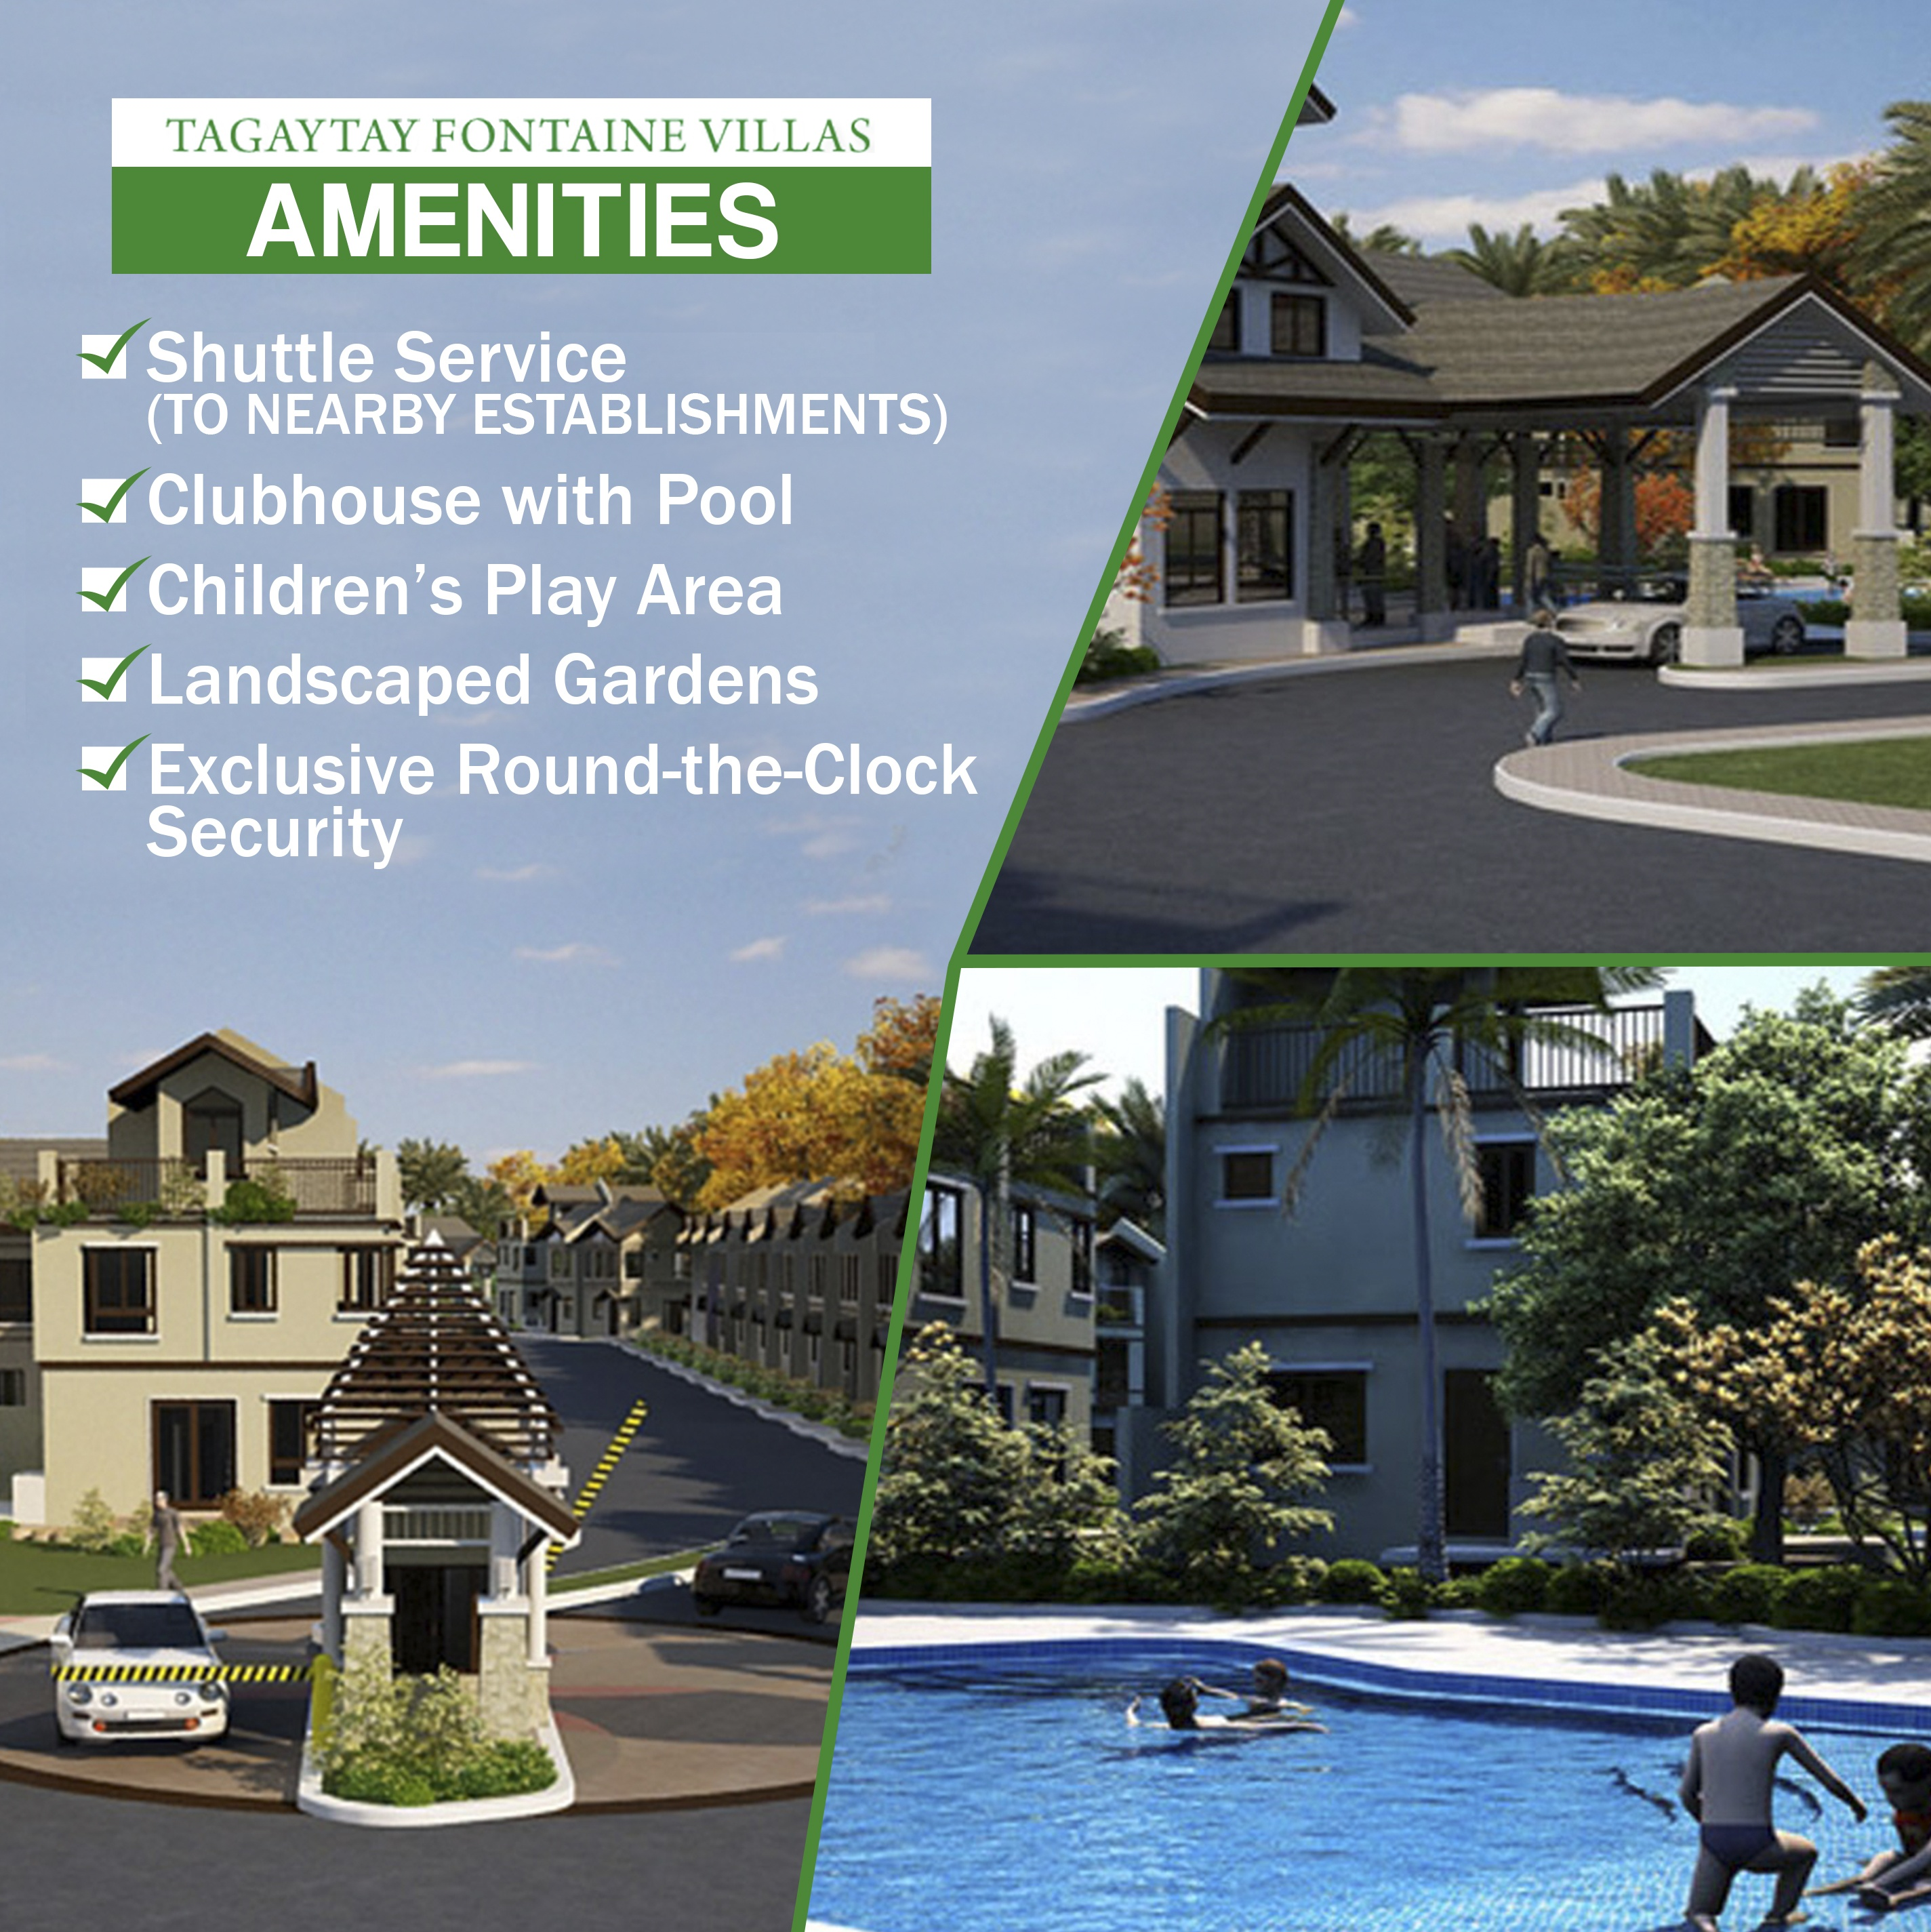 Tagaytay Fontaine Villas list of amenities